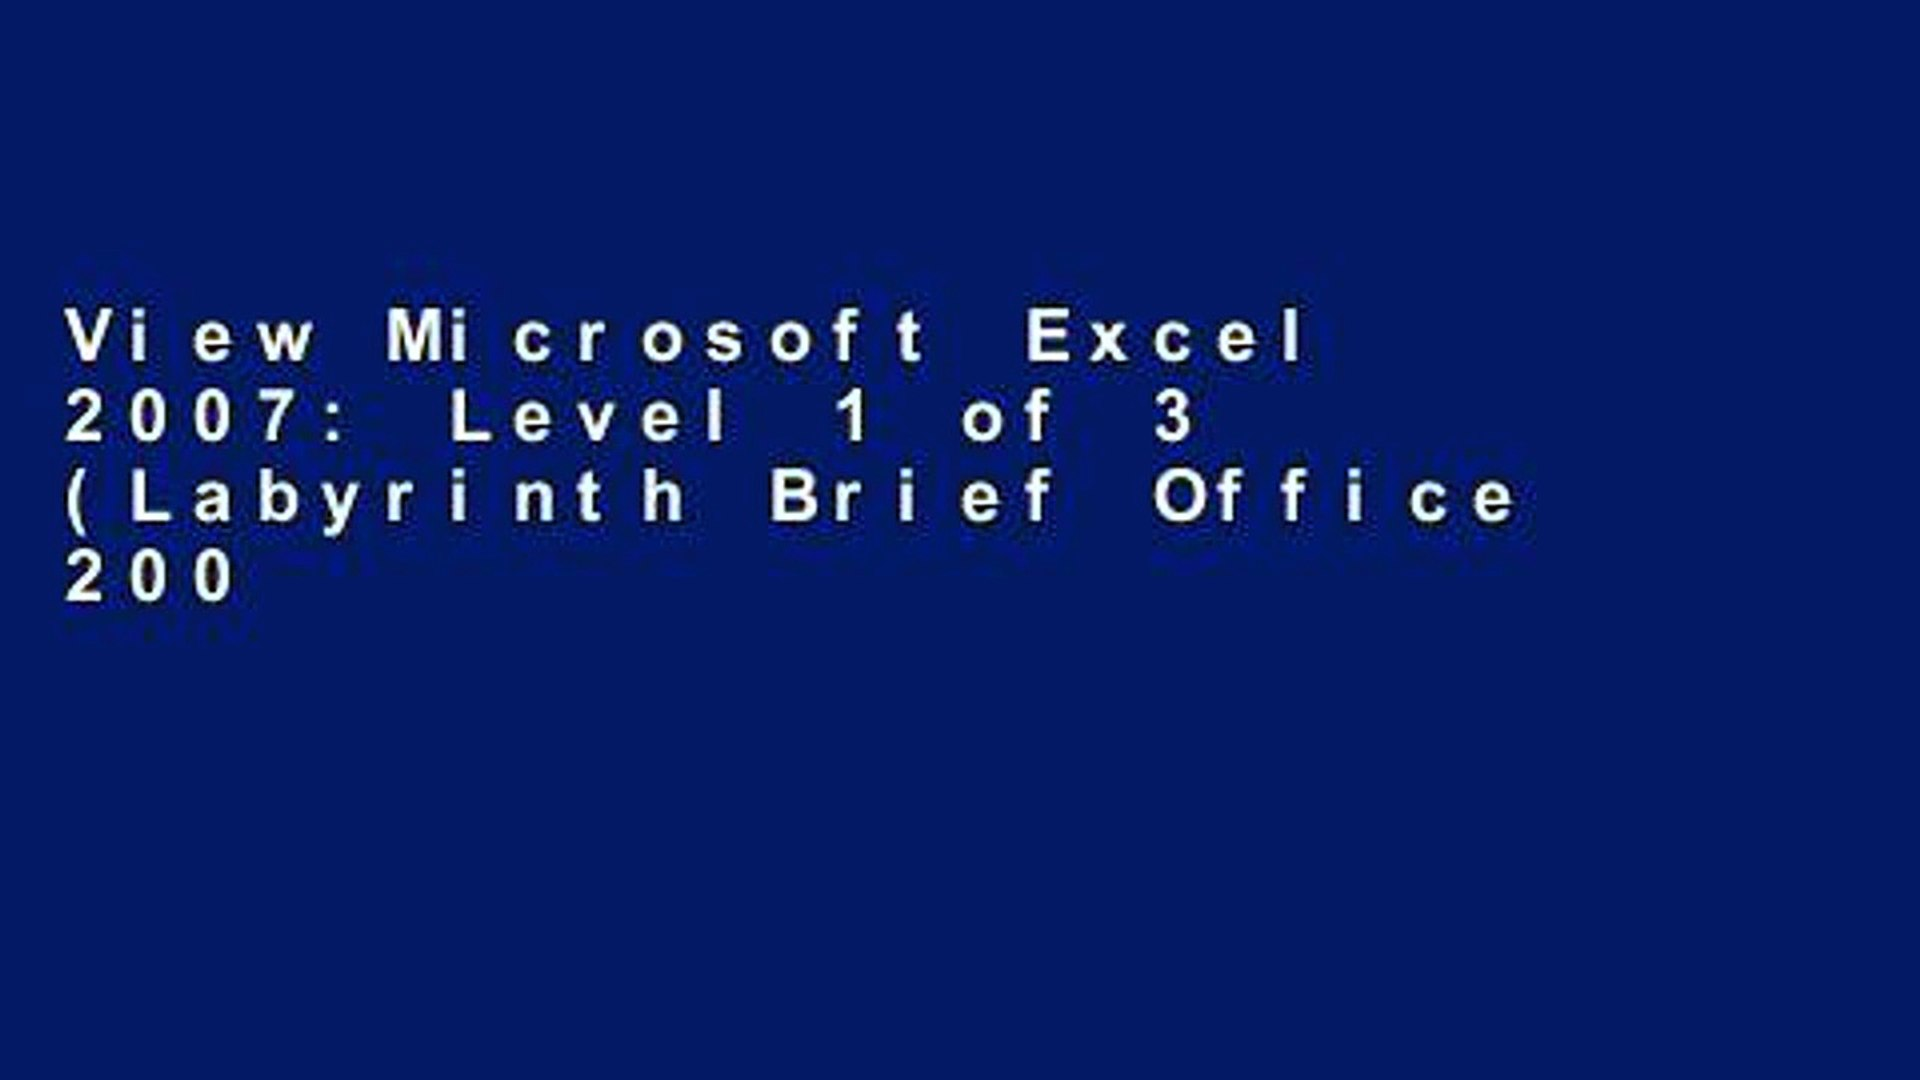 View Microsoft Excel 2007: Level 1 of 3 (Labyrinth Brief Office 2007) Ebook